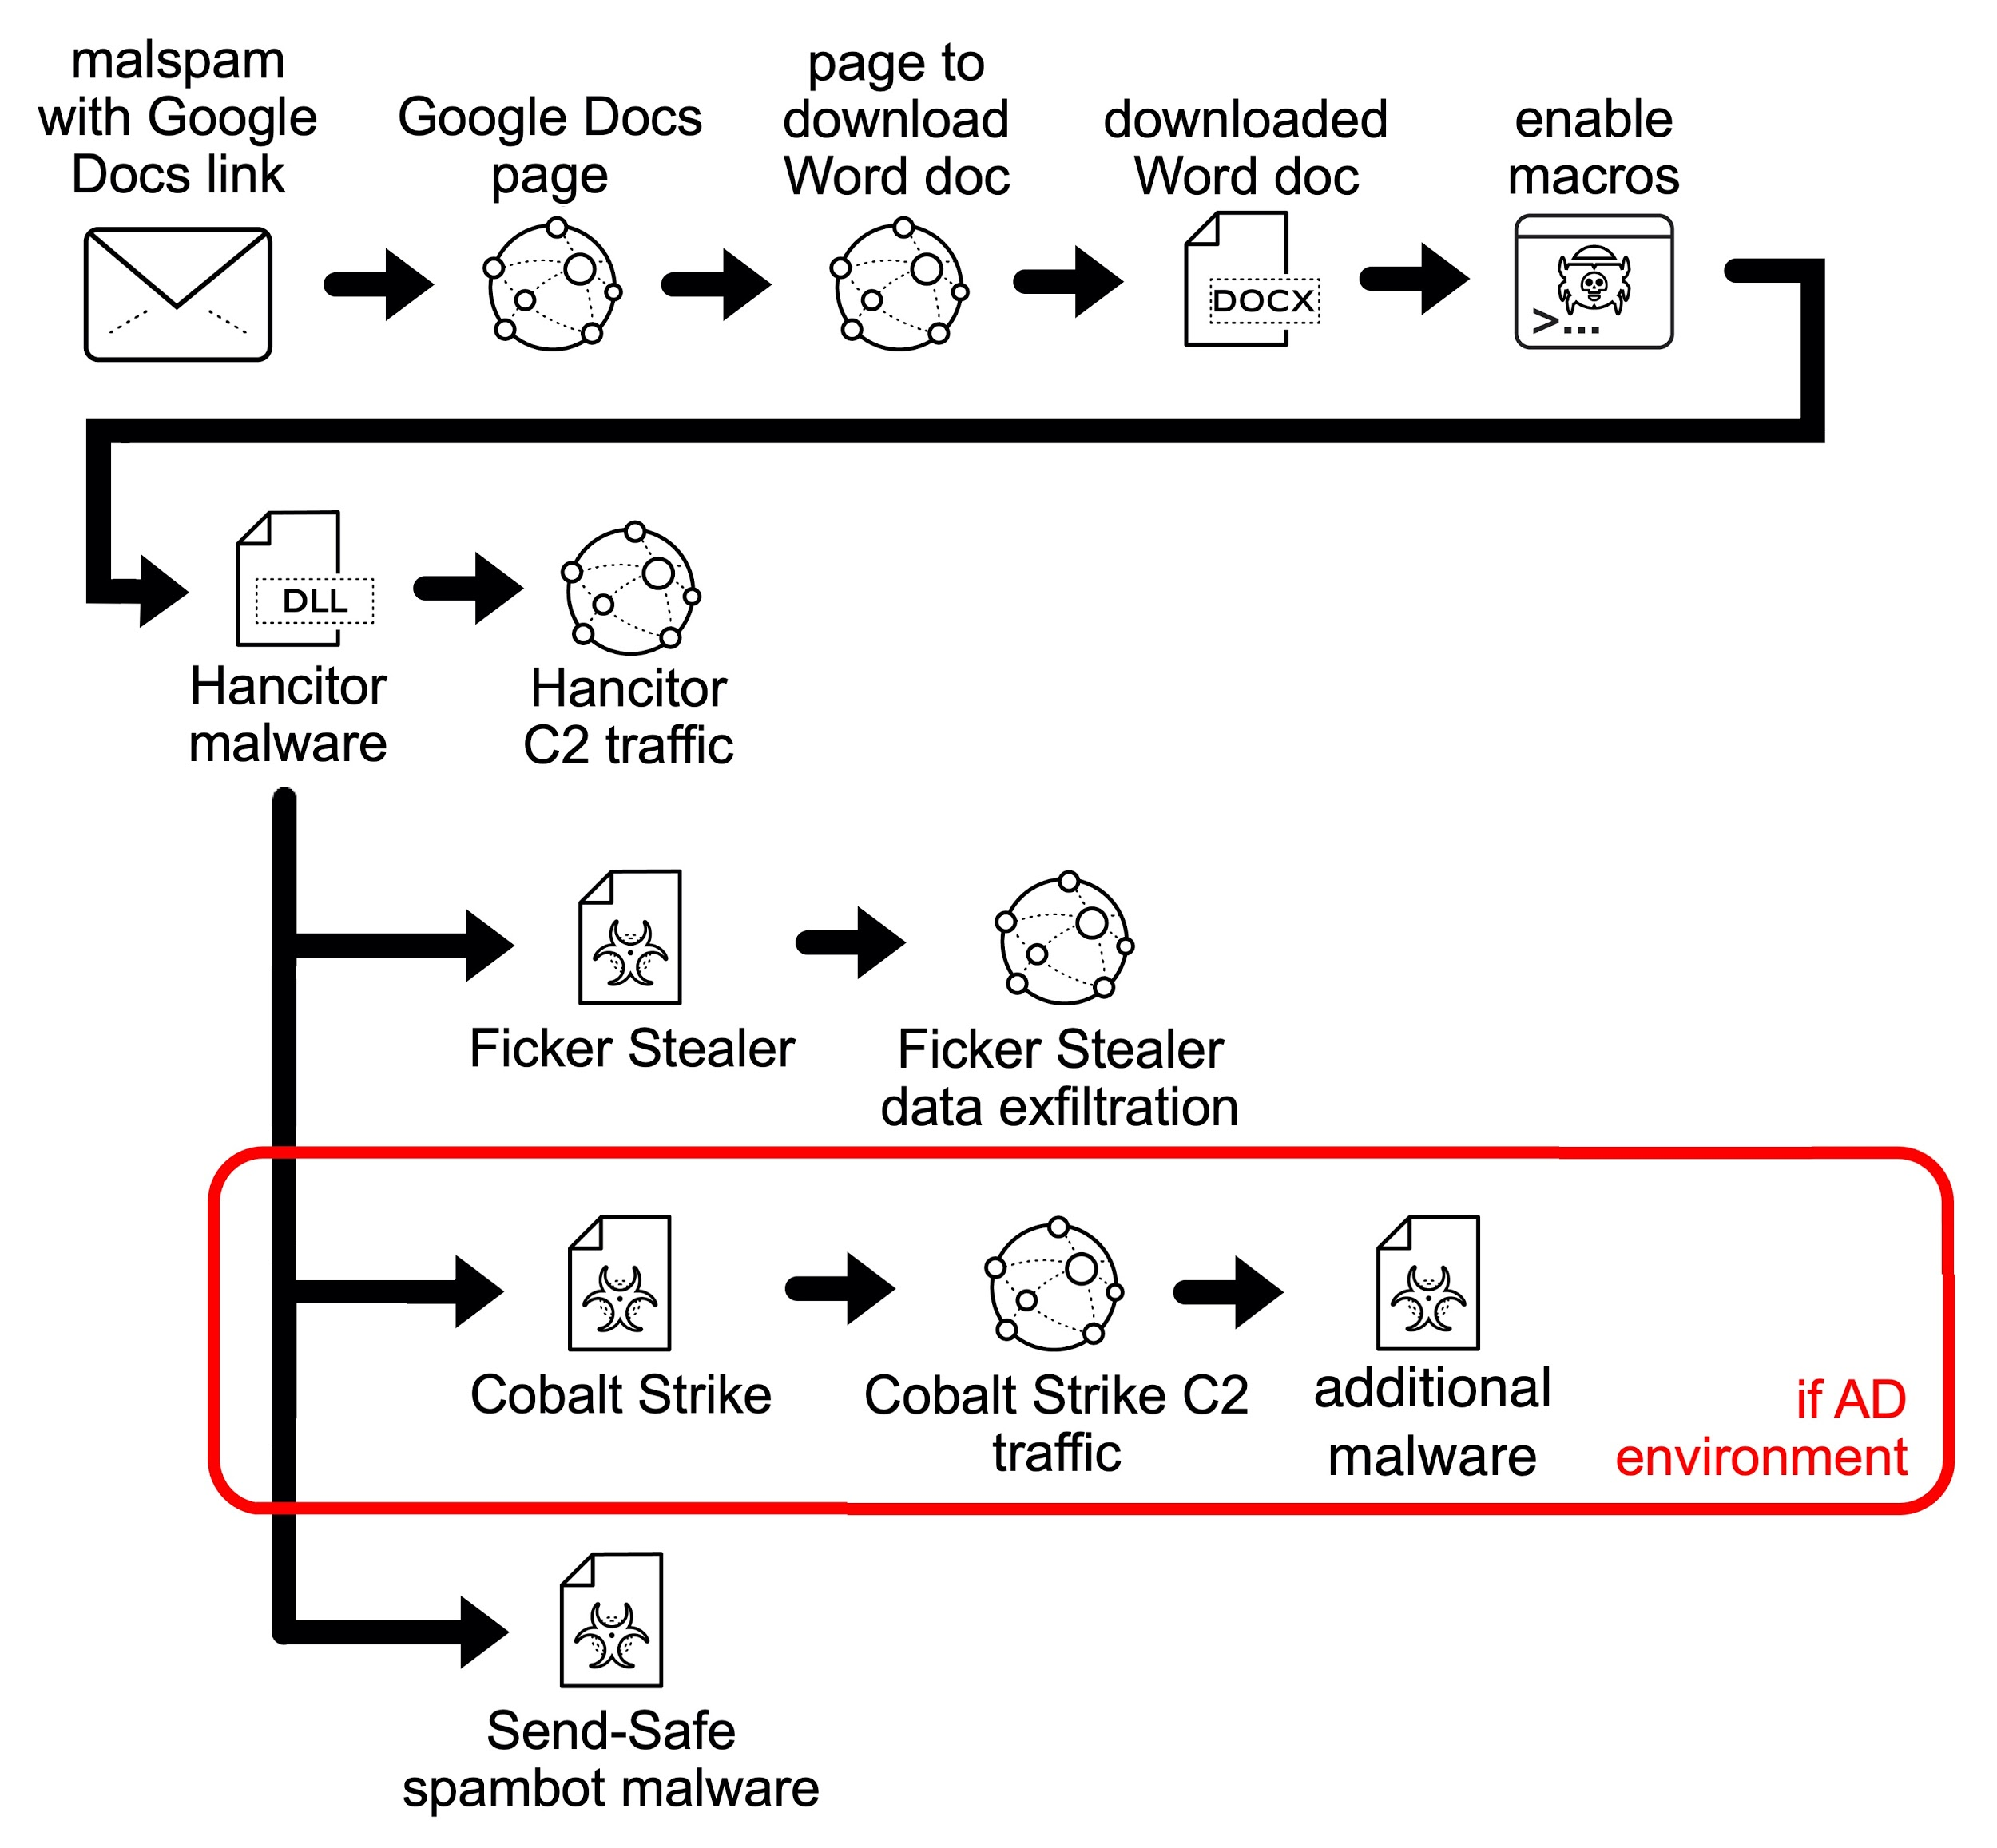 The Hancitor infection chain of events begins with malspam with a Google Docs link and from there flows to a Google Docs page, a page to download a Word doc, a downloaded Word doc, enabling macros, Hancitor malware, Hancitor C2 traffic, Ficker Stealer, Ficker Stealer data exfiltration, Cobalt Strike (in an AD environment), Cobalt Strike C2 traffic, additional malware and Send-Safe spambot malware.